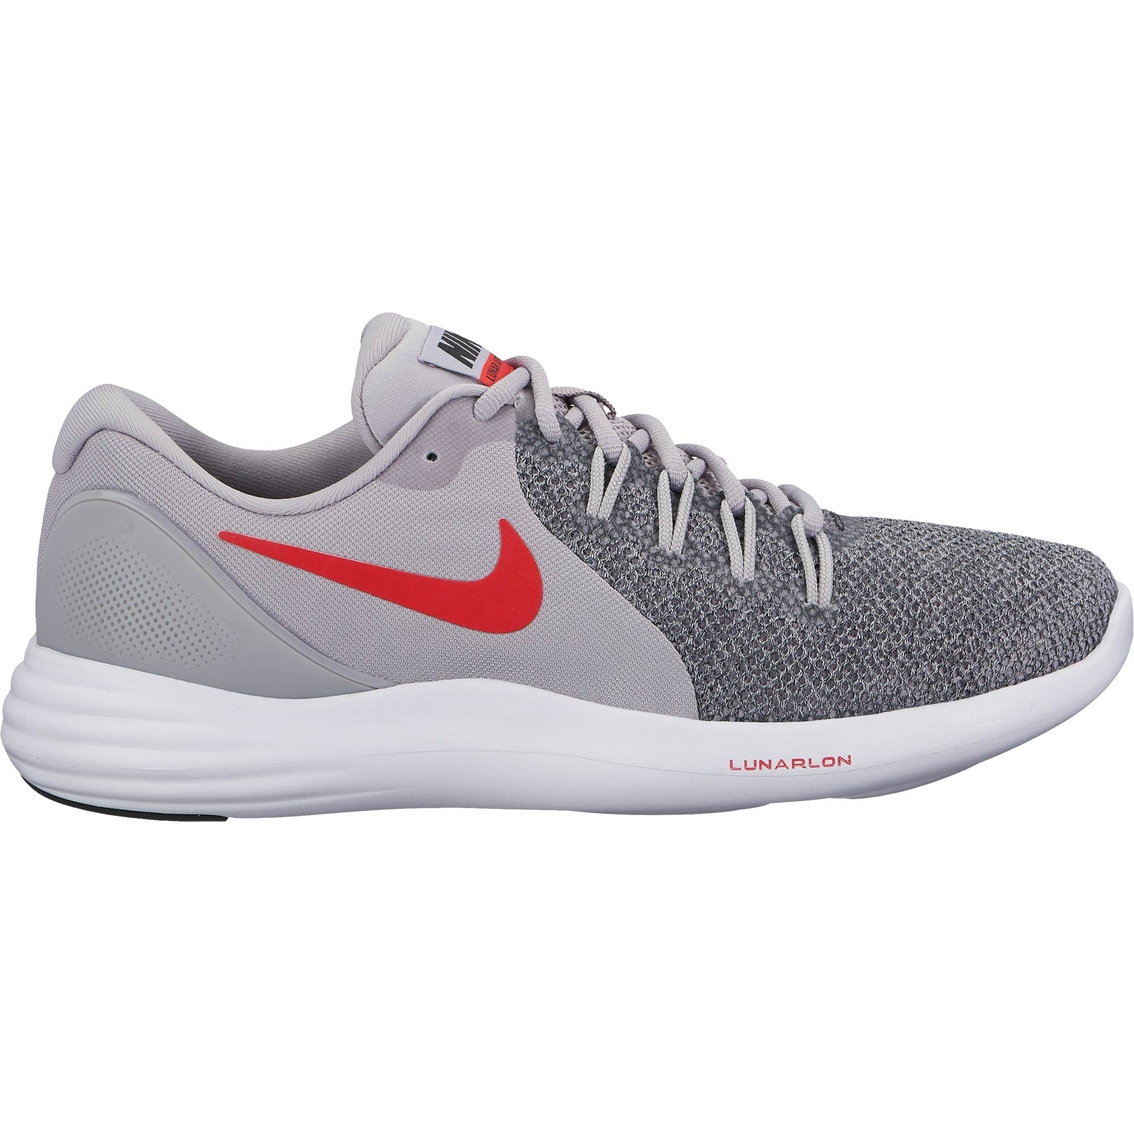 c7747f842c1c Nike Men s Lunar Apparent Running Shoes